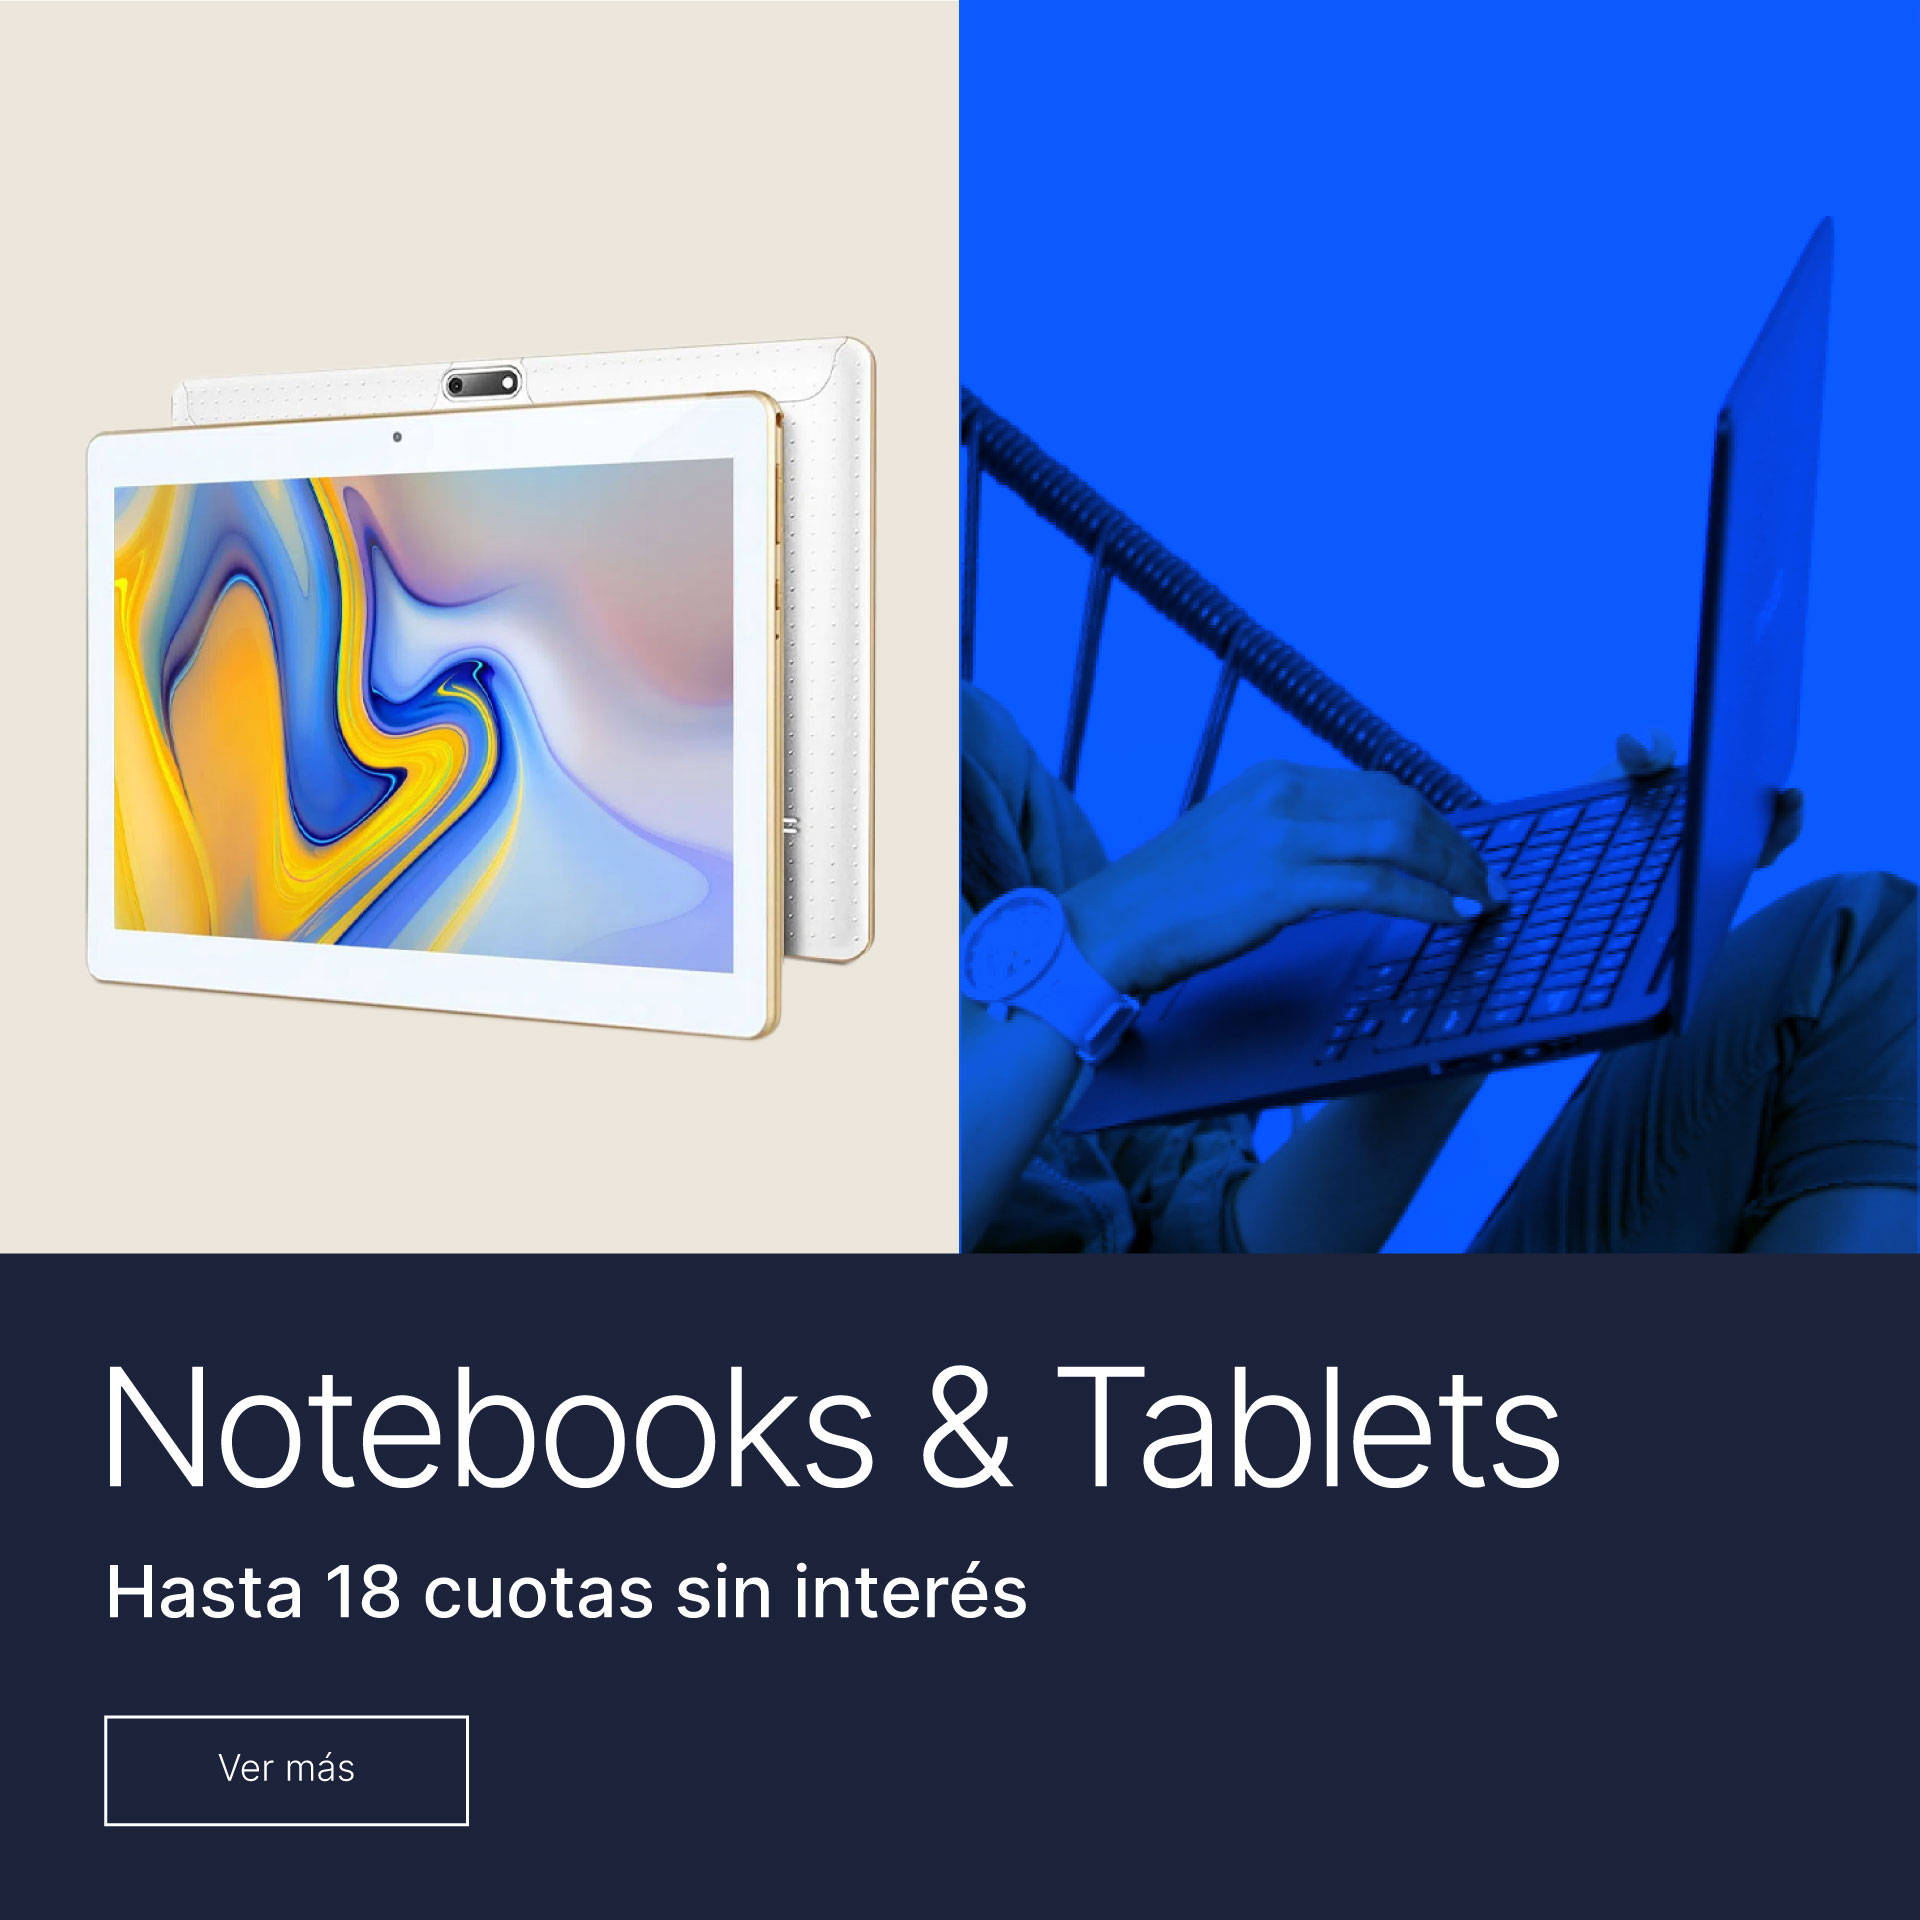 Notebooks y Tablets!